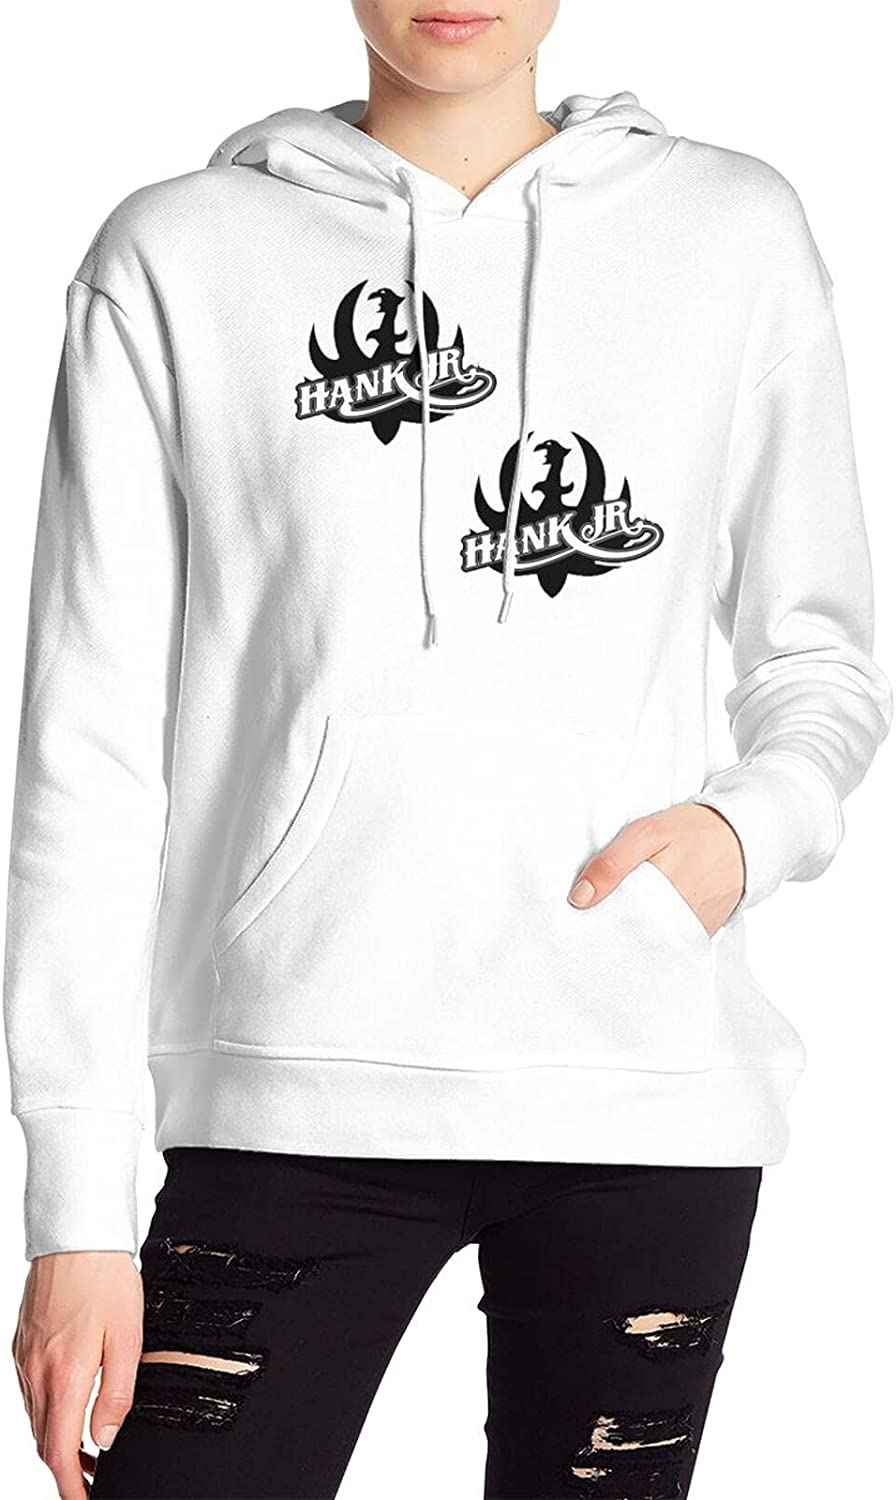 Free shipping on posting reviews Ruger Women's hooded White sweatshirt Bombing new work